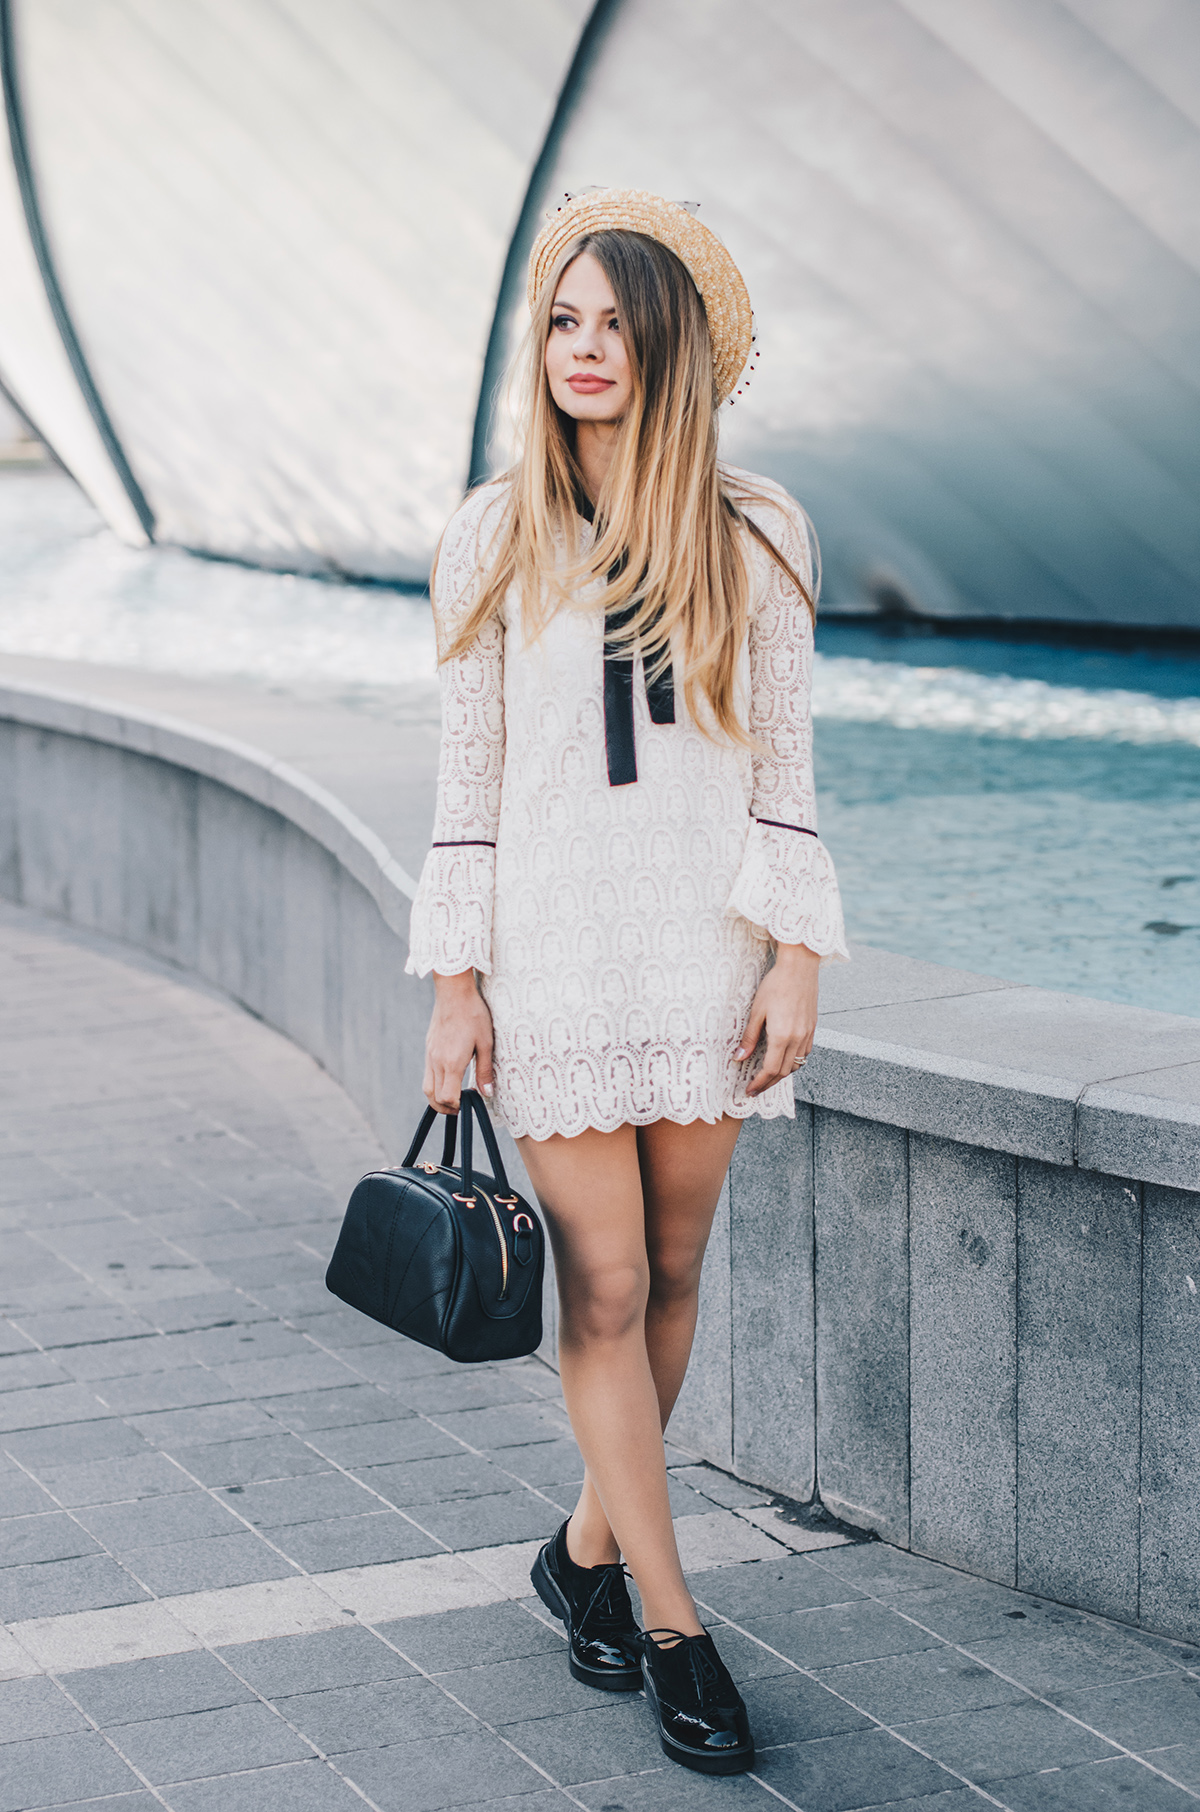 lace-dress-bell-sleeves-straw-hat-oxford-shoes-5